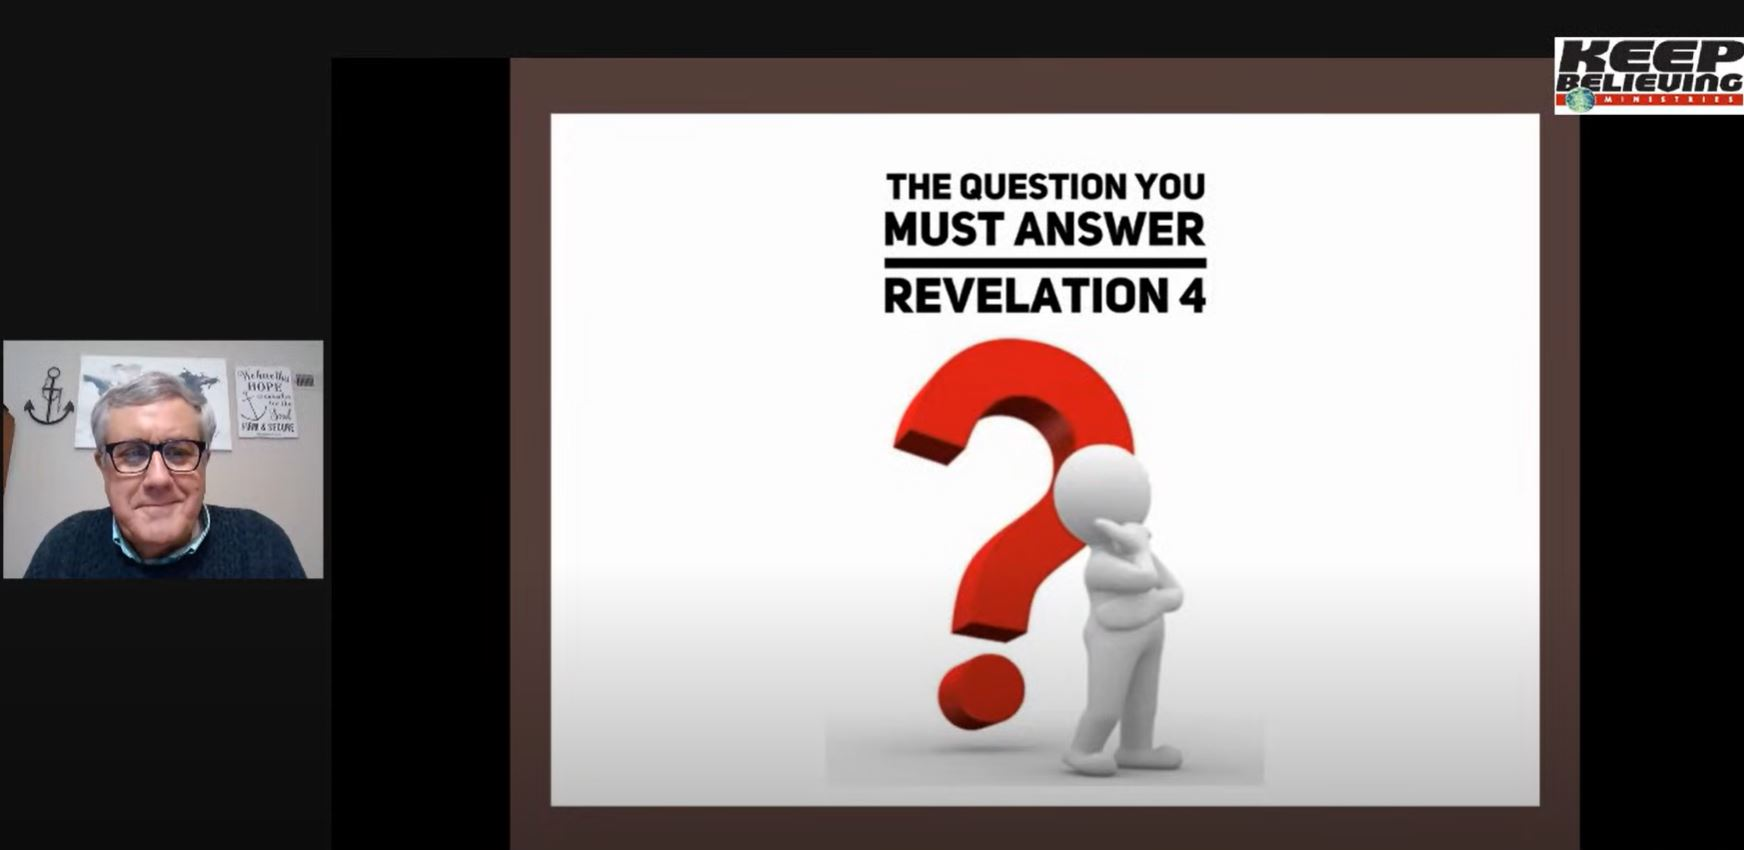 The Question You Must Answer (Revelation 4)